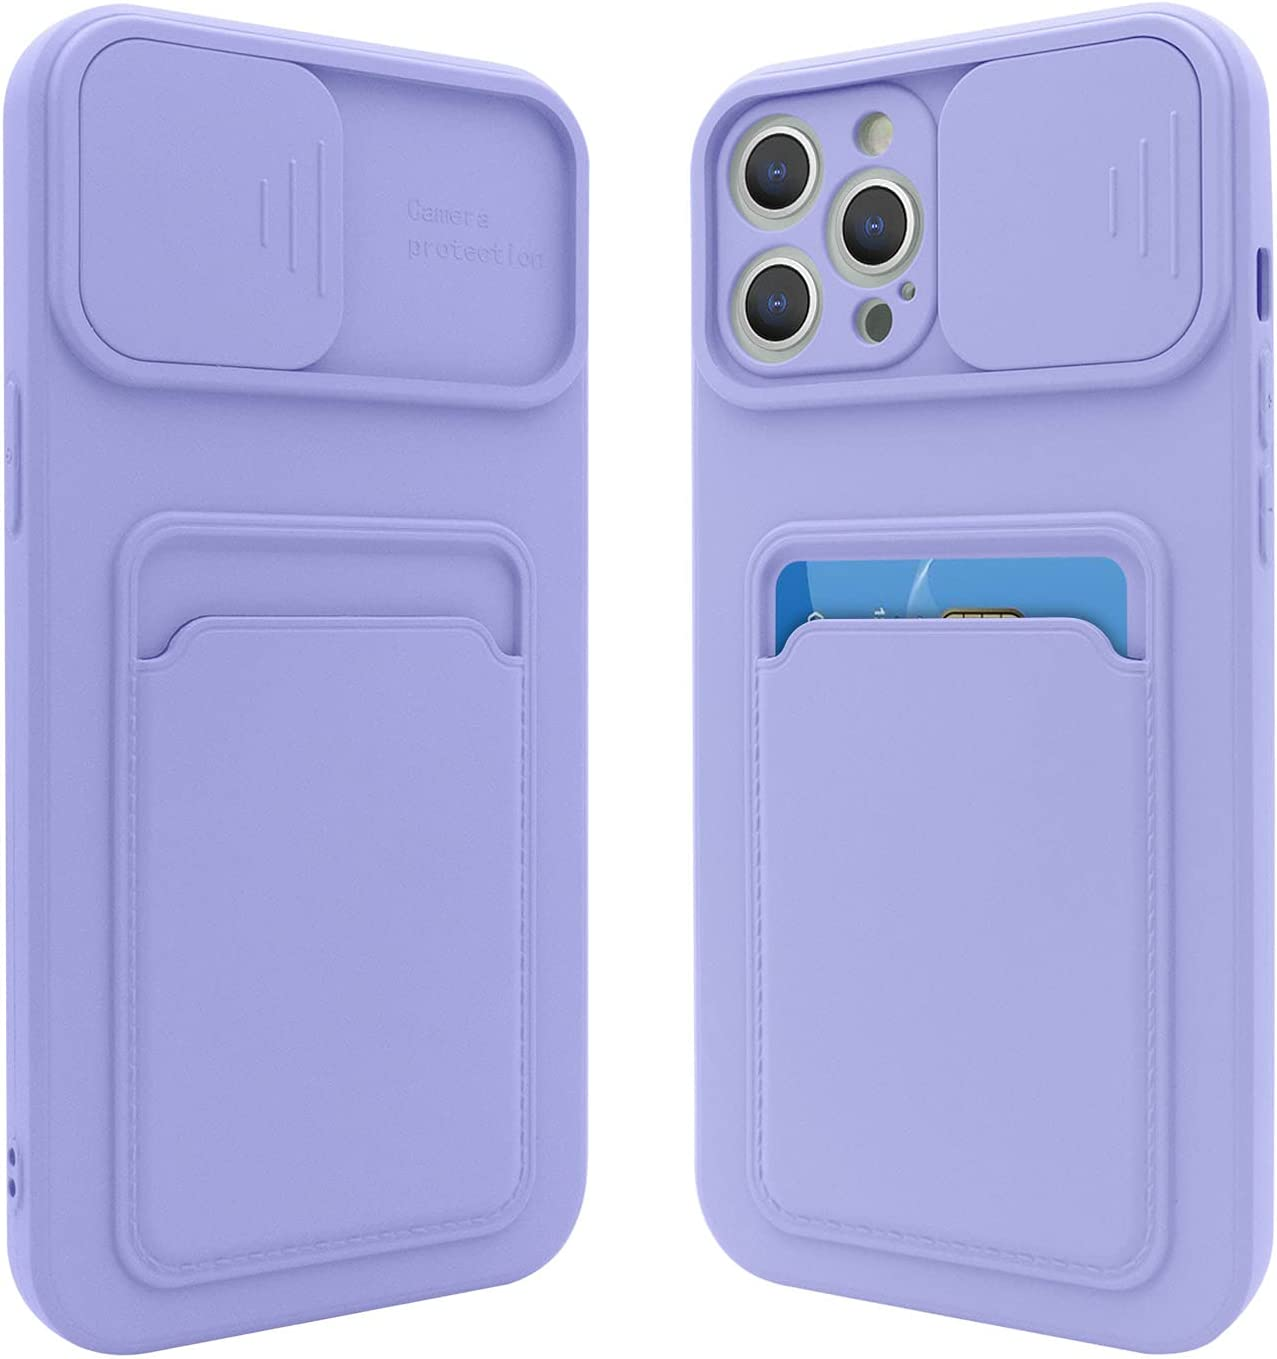 Fsoole iPhone 12 Pro Max Silicone Card Case with Camera Lens Protector, Credit Card Holder Sleeve Shockproof Cover for 6.7 Inch iPhone 12 Pro Max (Purple)